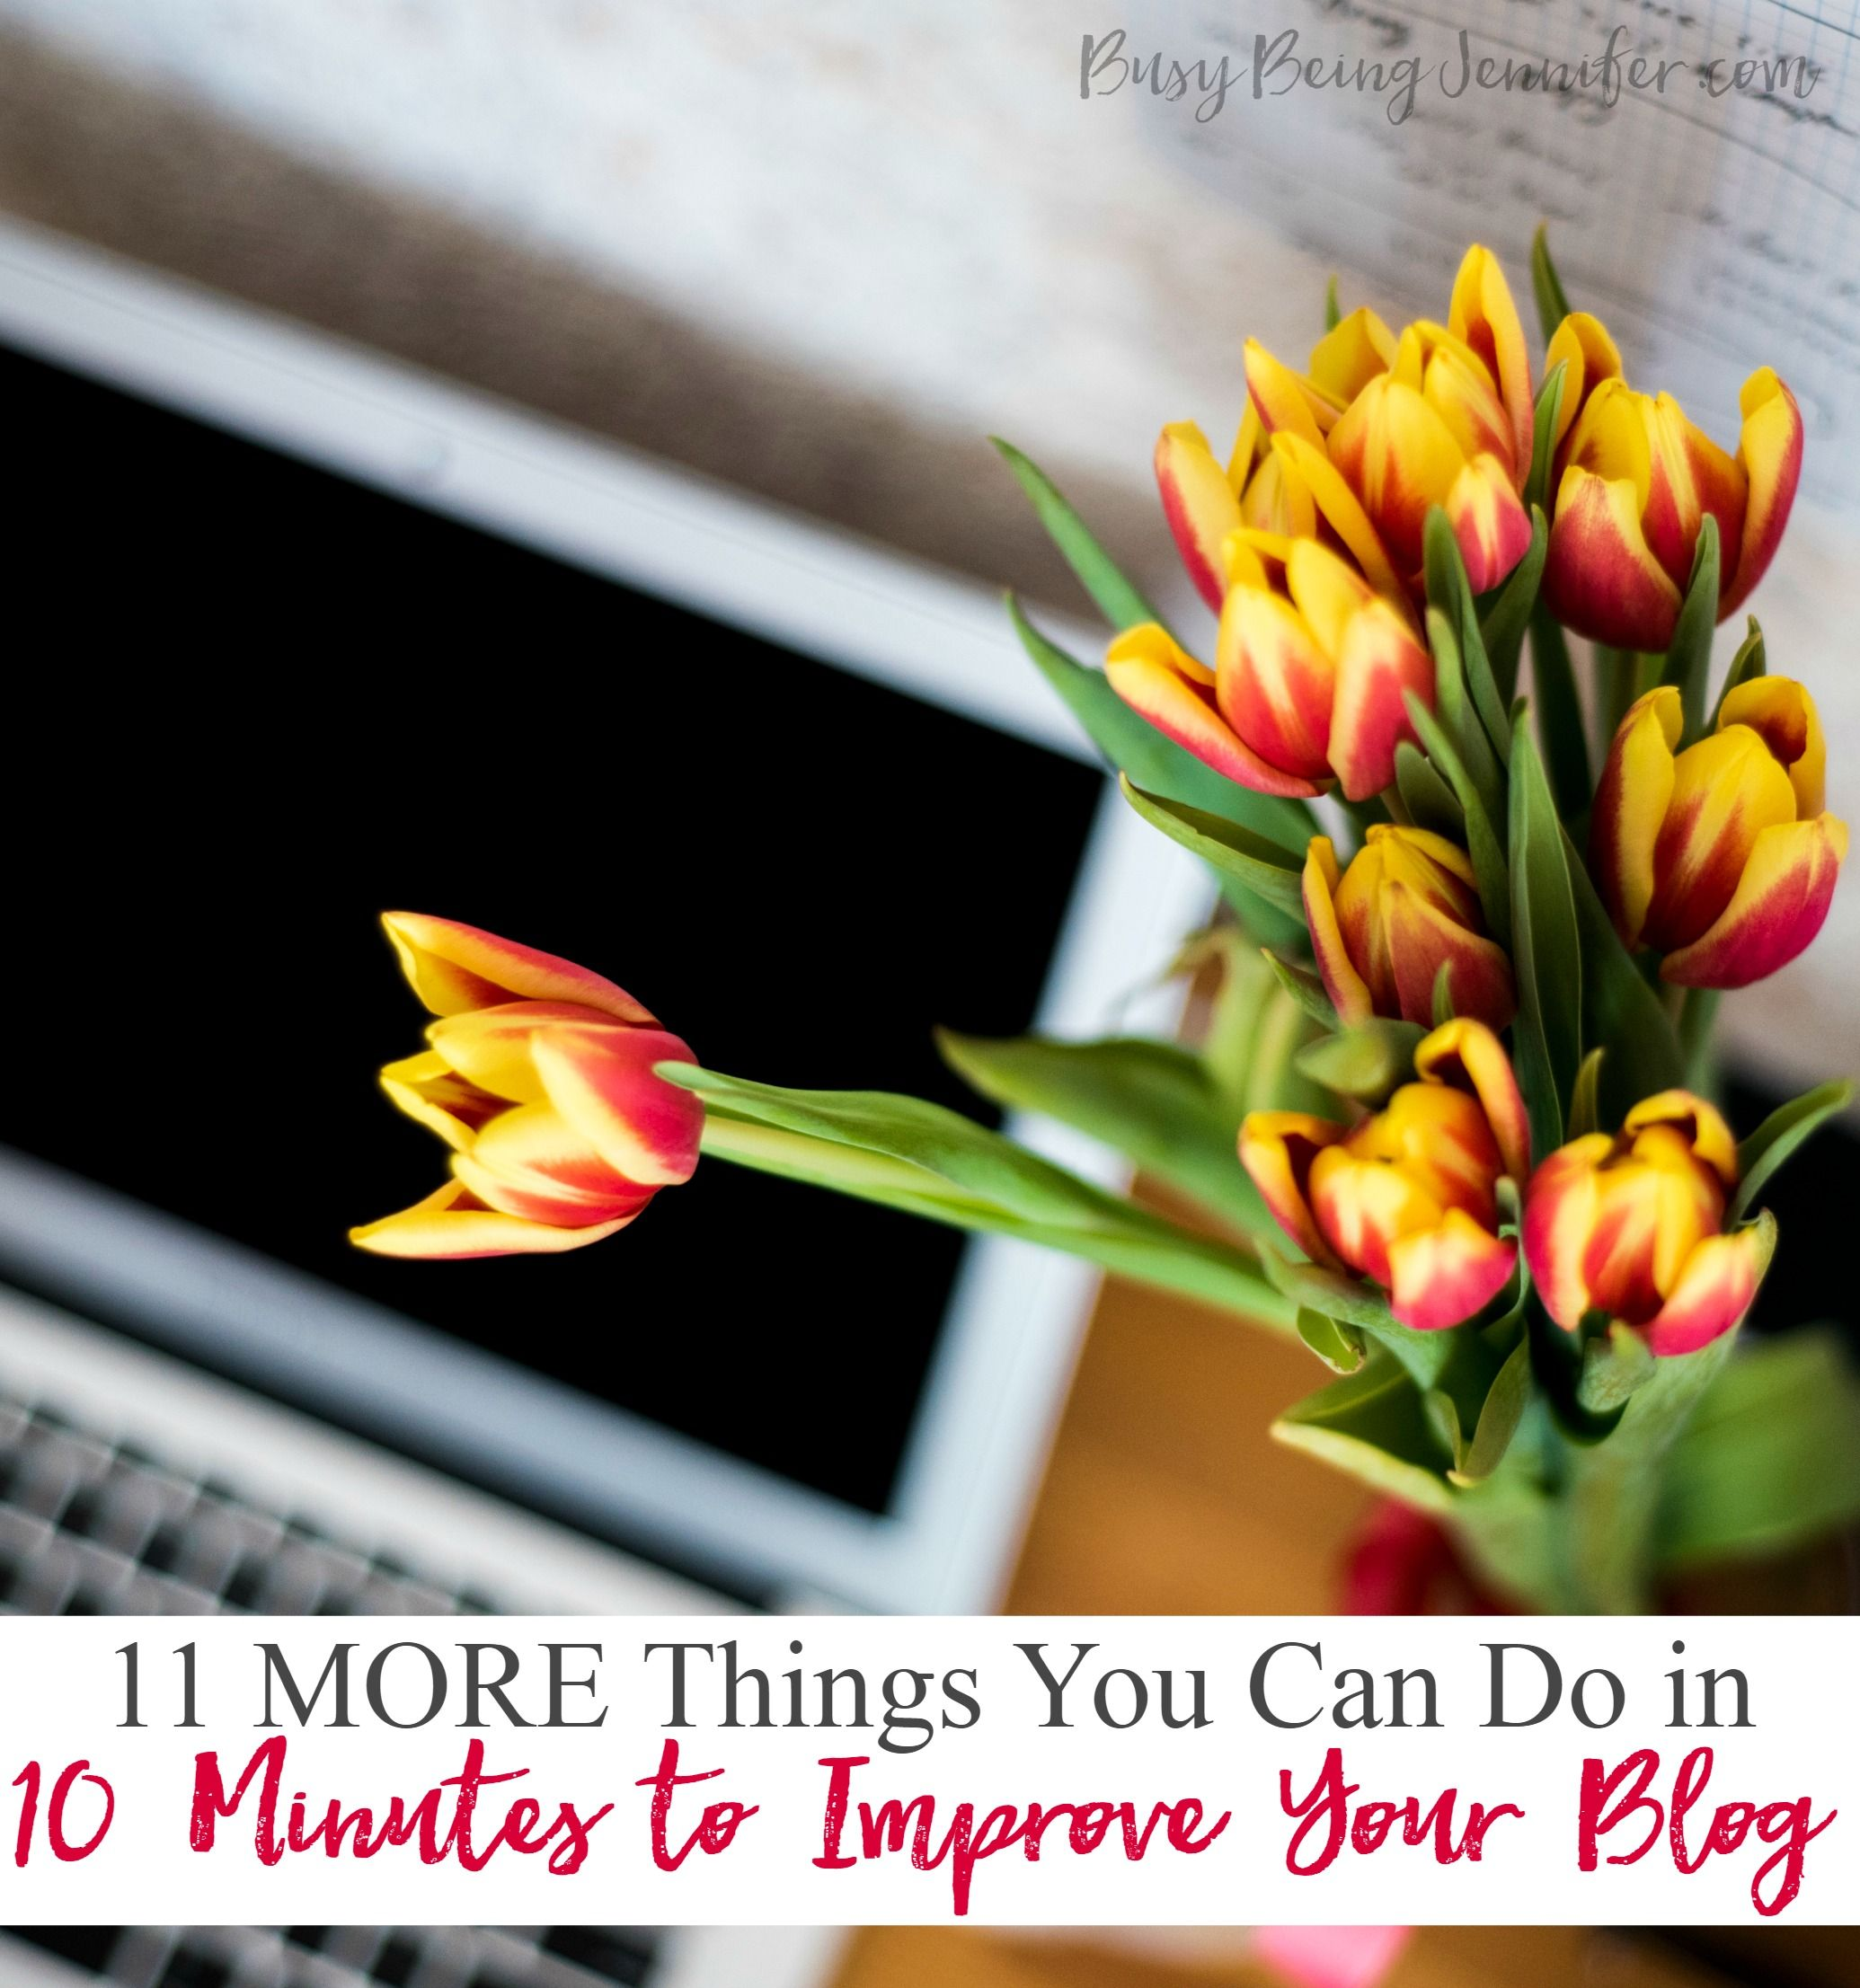 MORE things you can do in 10 minutes to improve your blog! These things that only take 10(ish) minutes that you can do to grow and improve your blog.